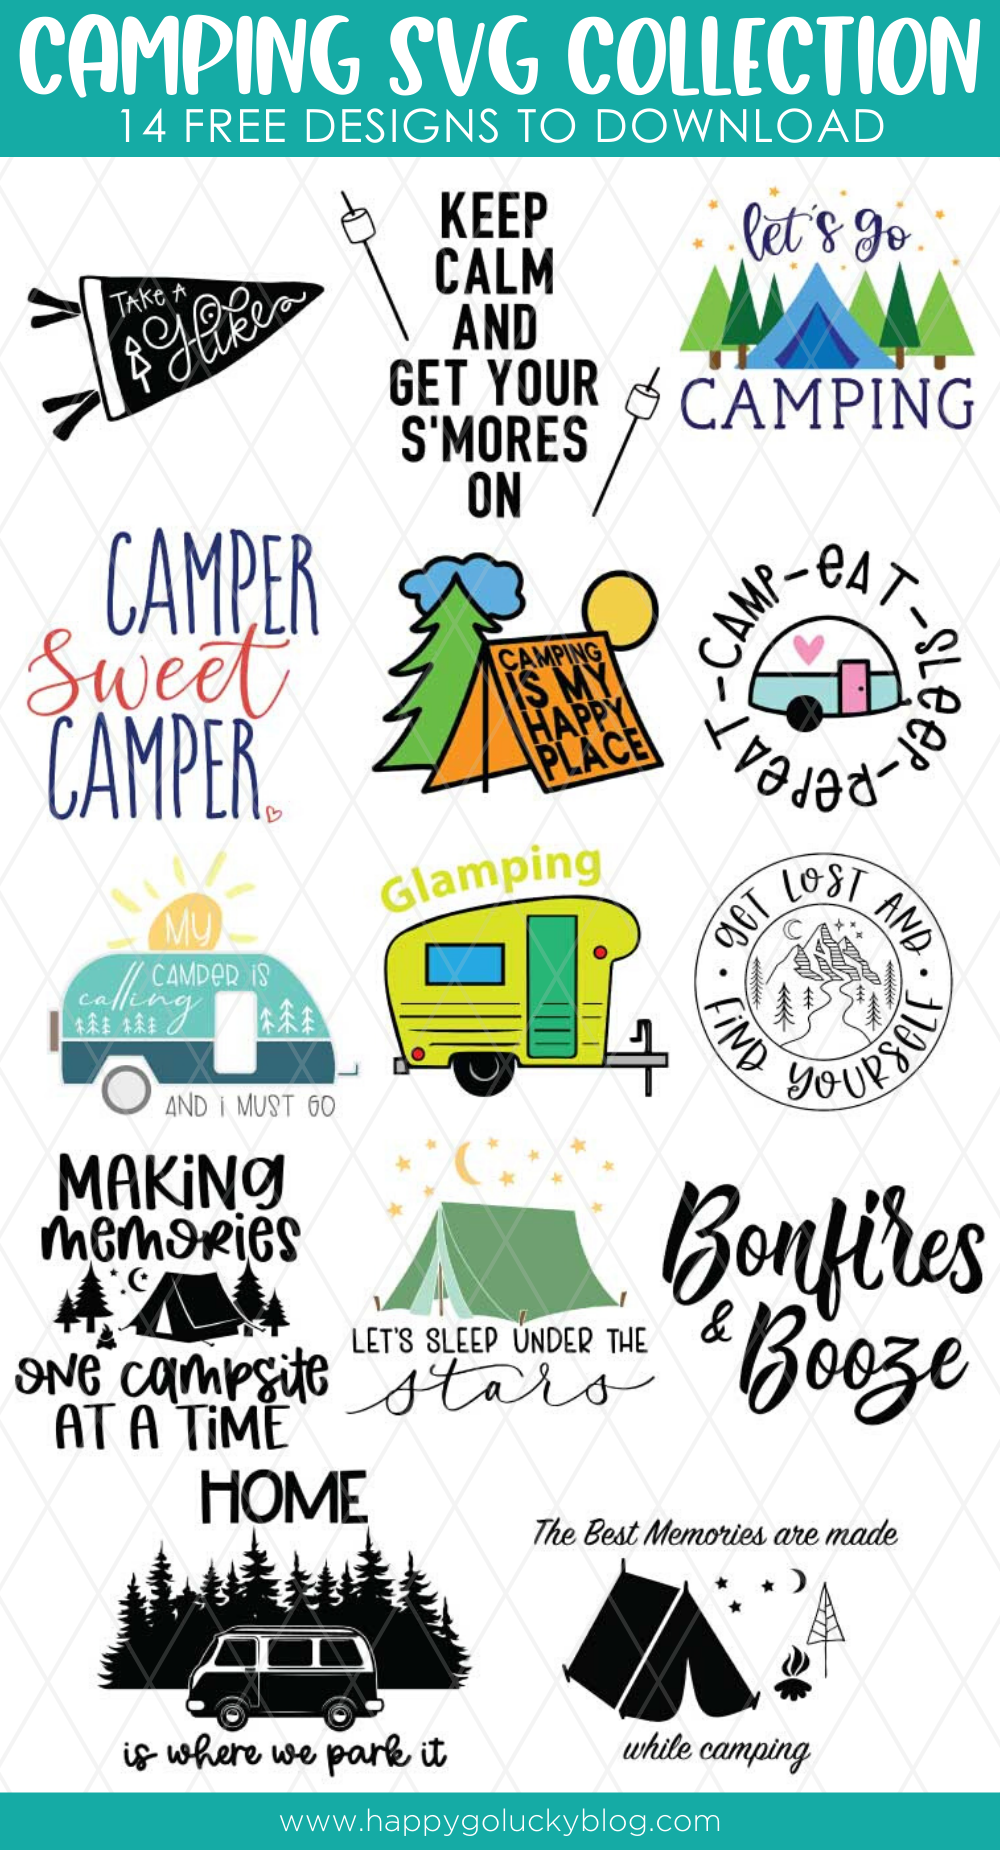 https://www.happygoluckyblog.com/wp-content/uploads/2020/07/Camping-SVG-Collection.png